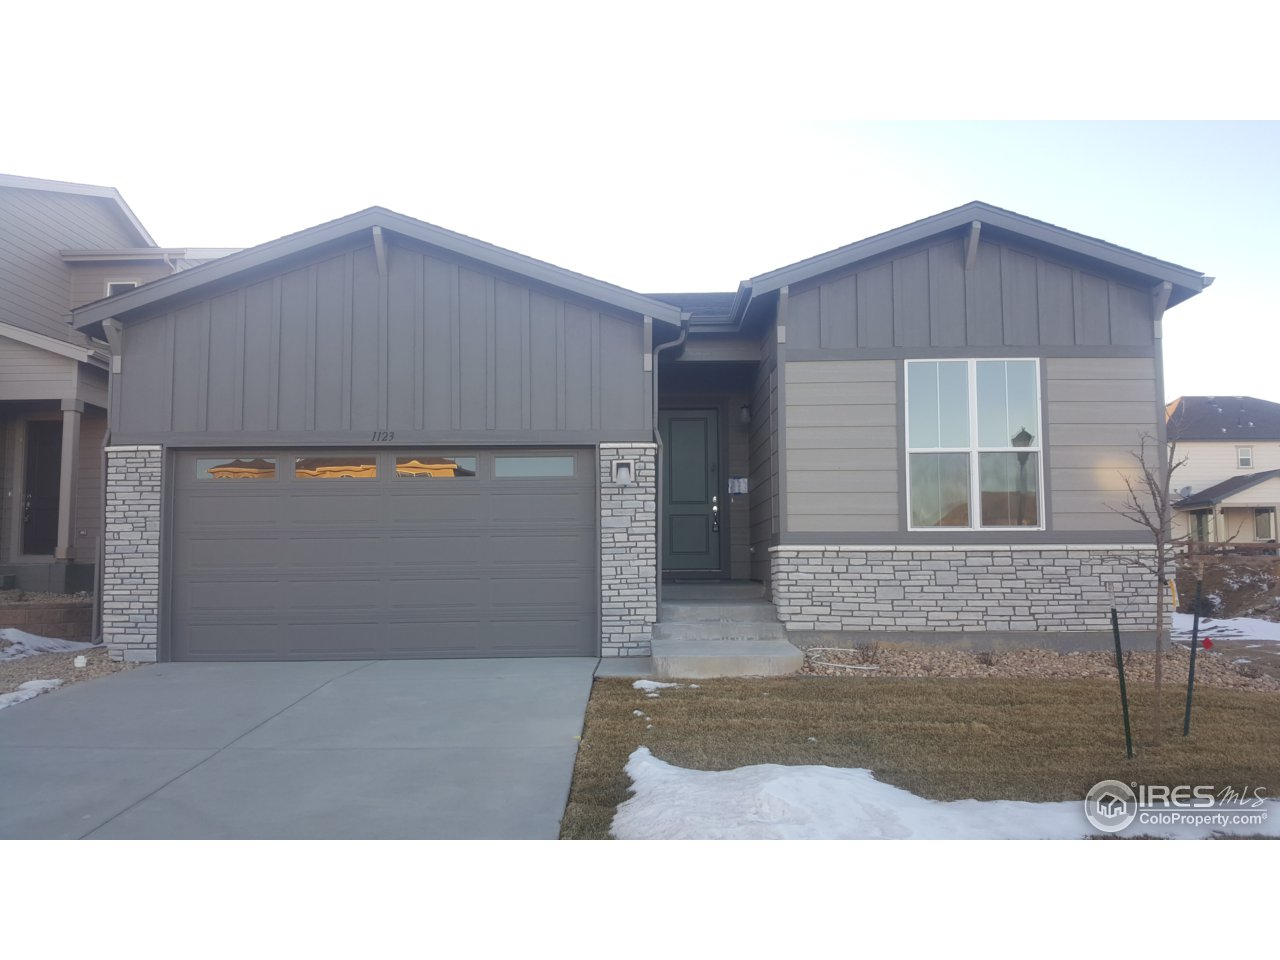 1123 102nd Ave, Greeley, CO 80634